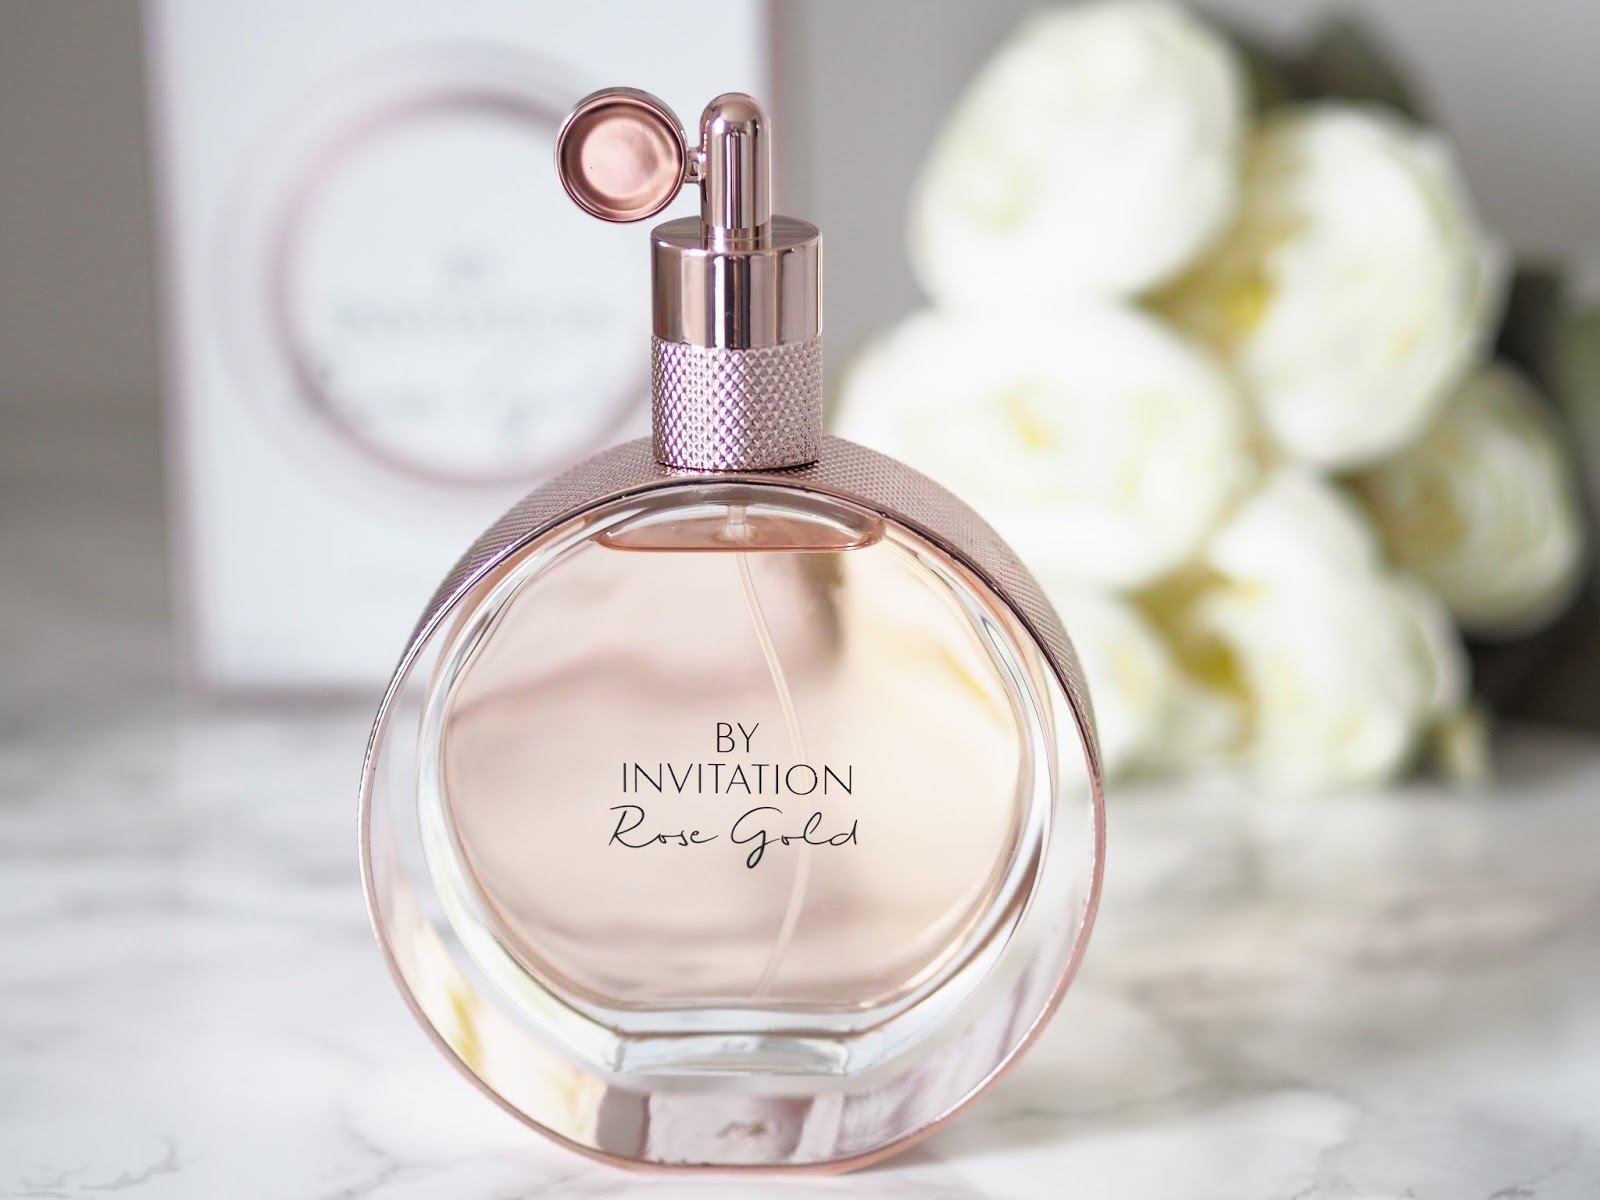 Michael bublé By Invitation Rose Gold eau de parfum Floral oriental gourmand fragrance \ Priceless lLife of Mine \ over 40 lifestyle blog